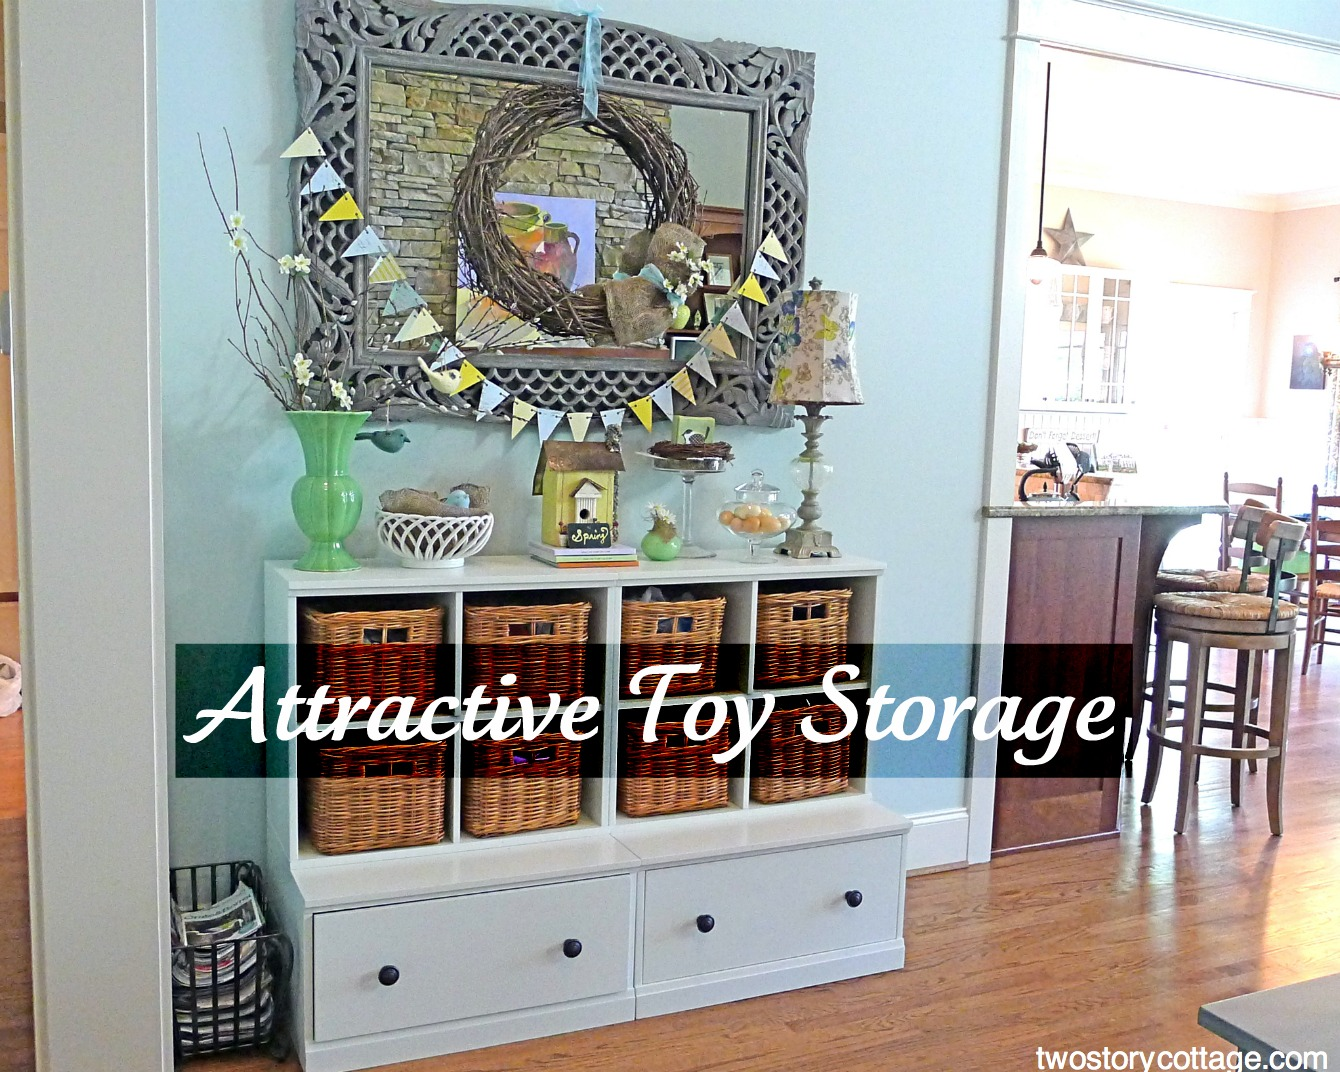 Creative toy storage ideas for living room 2017 2018 for Living room toy storage